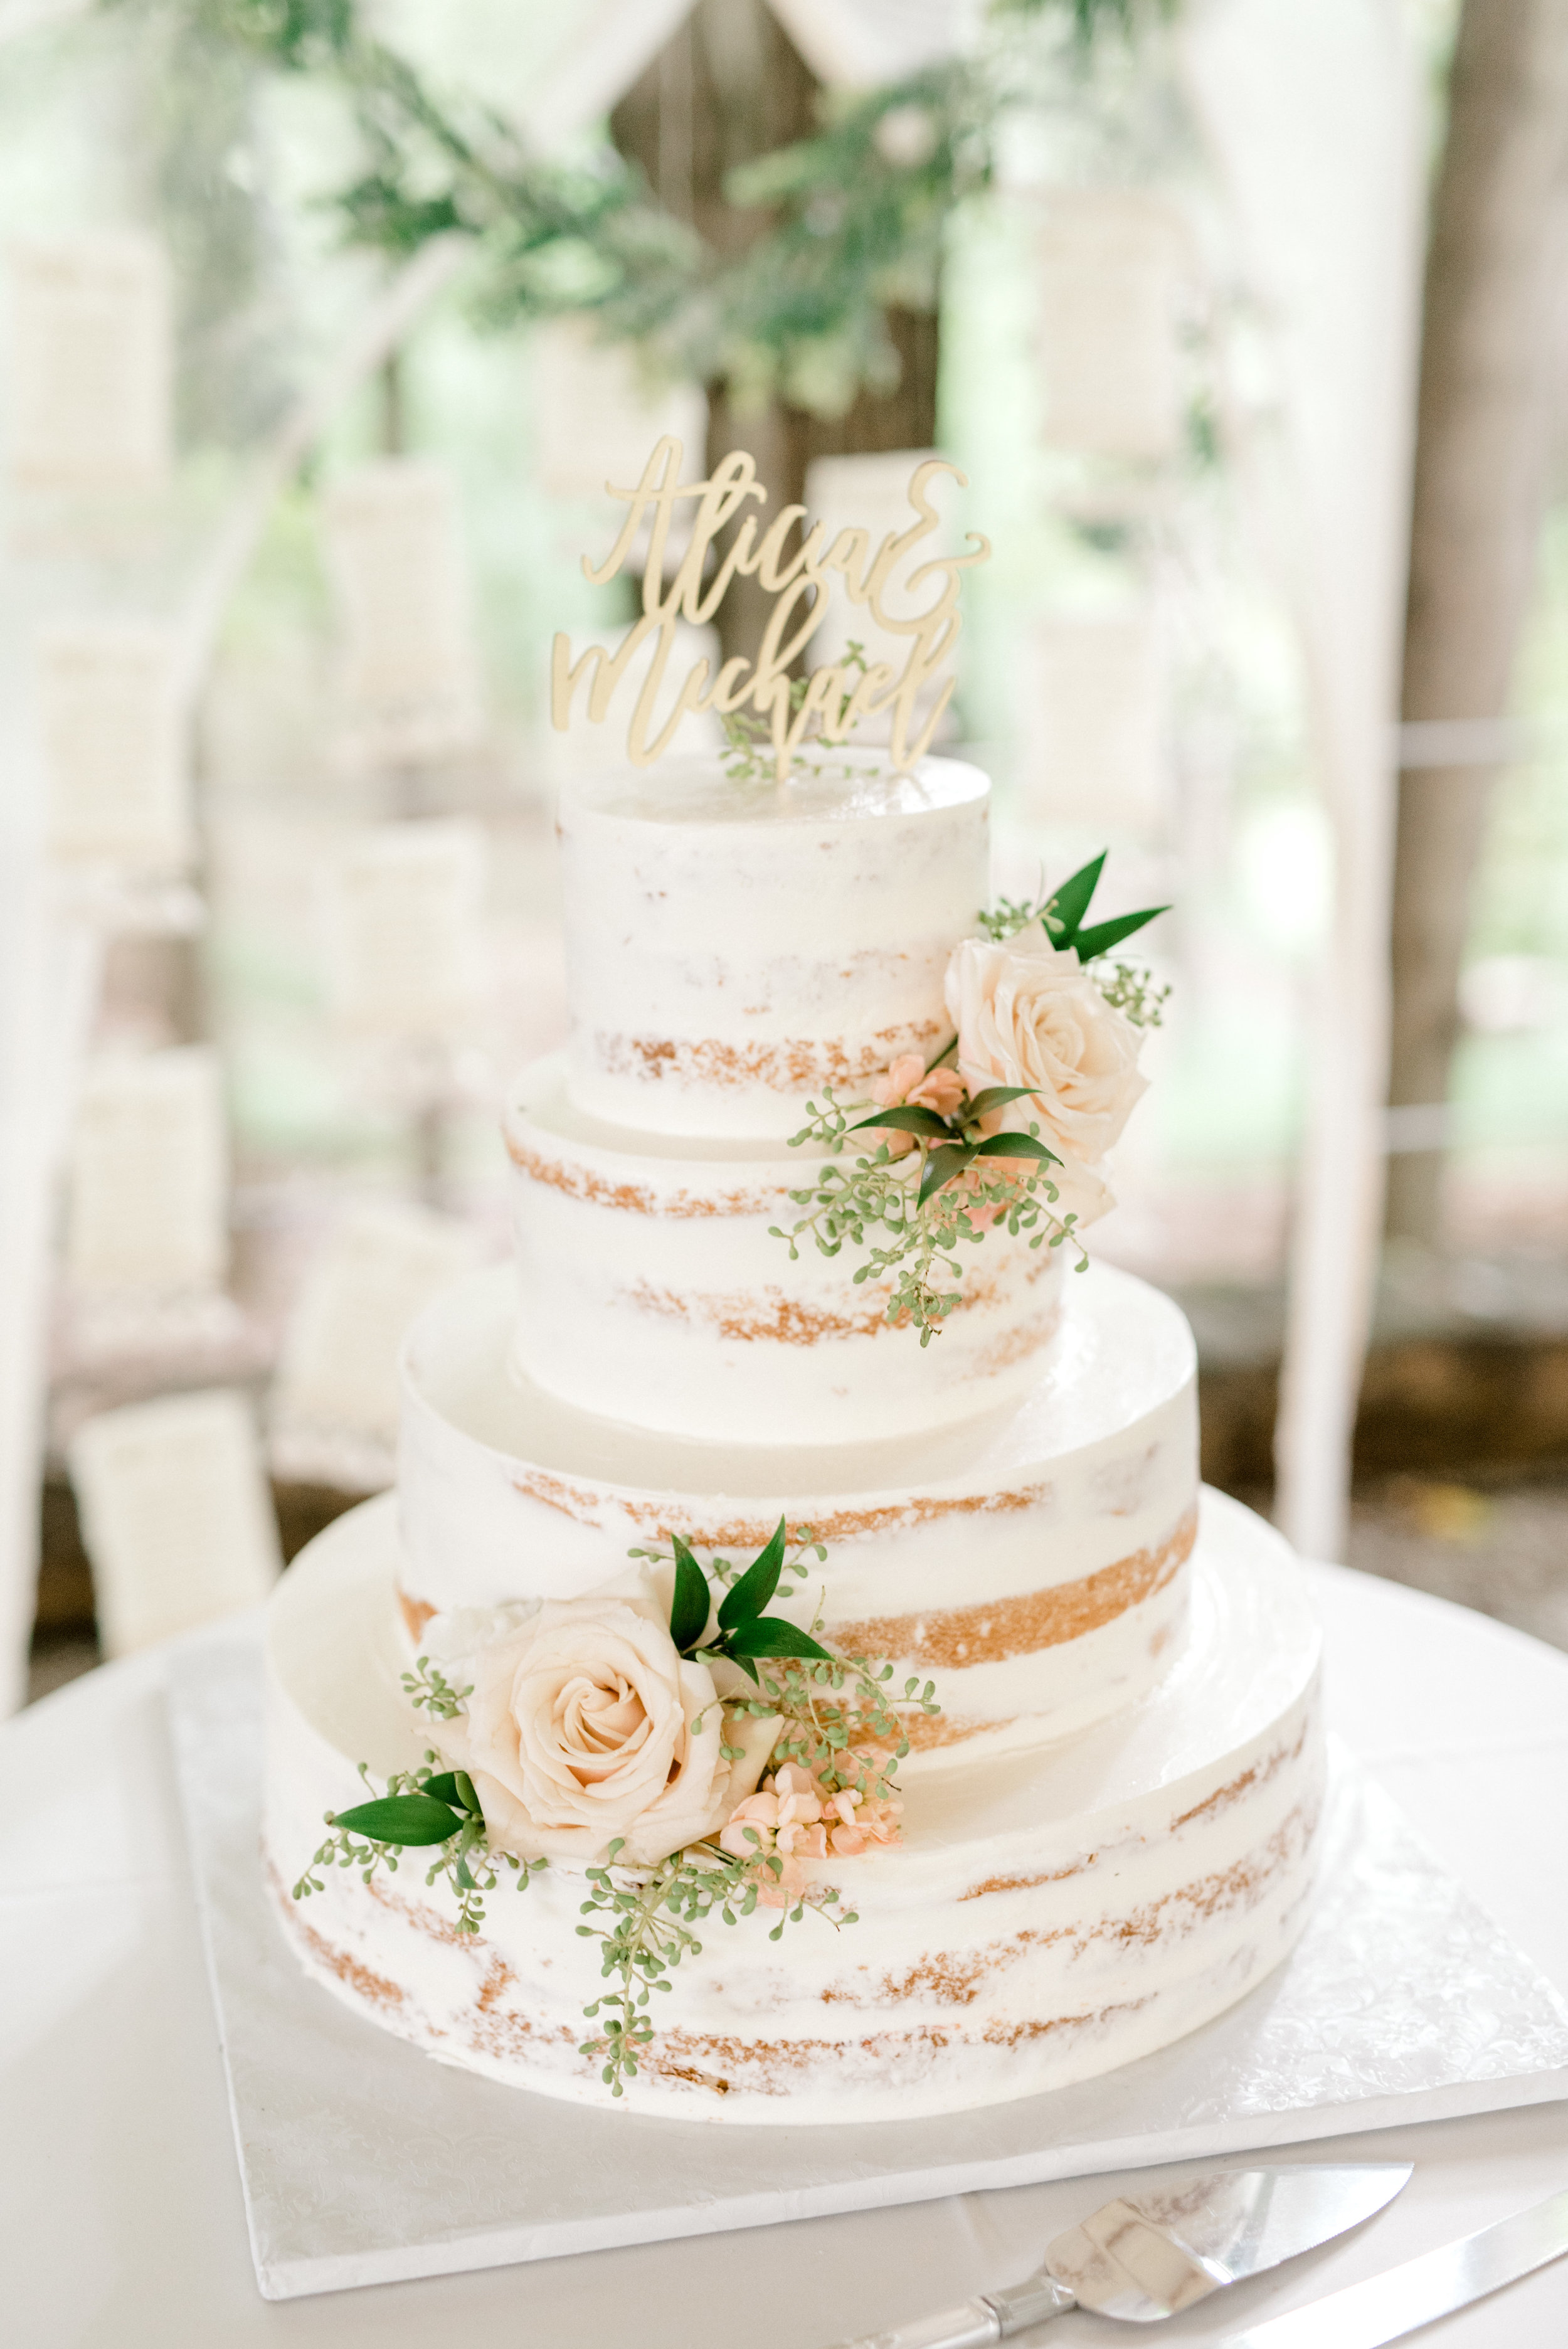 We adore the simplicity and elegance of this white half naked cake finished with a laser cut cake topper at this bright boho chic Tyler Gardens wedding in Bucks County